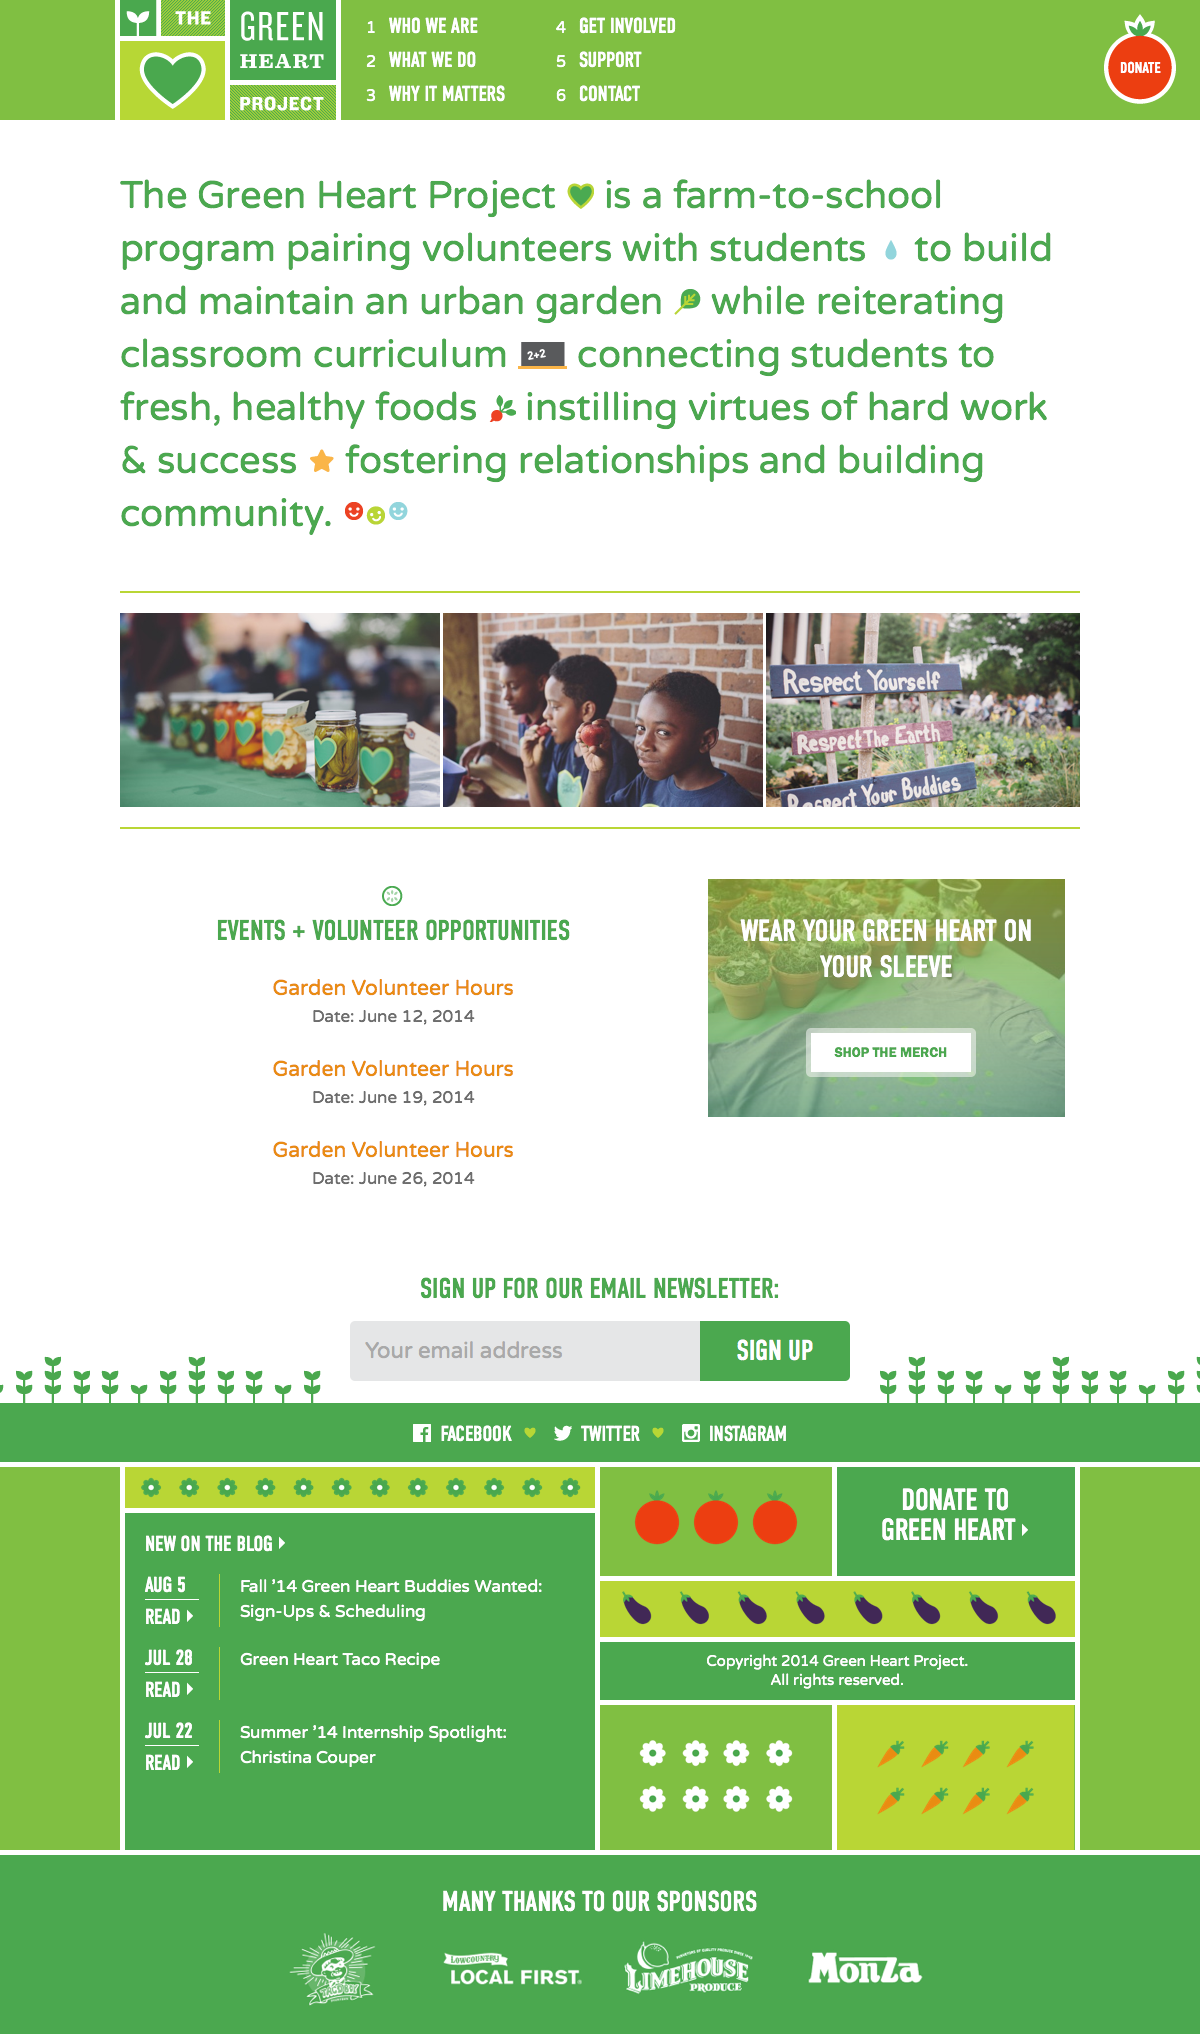 A screenshot of The Green Heart Project website